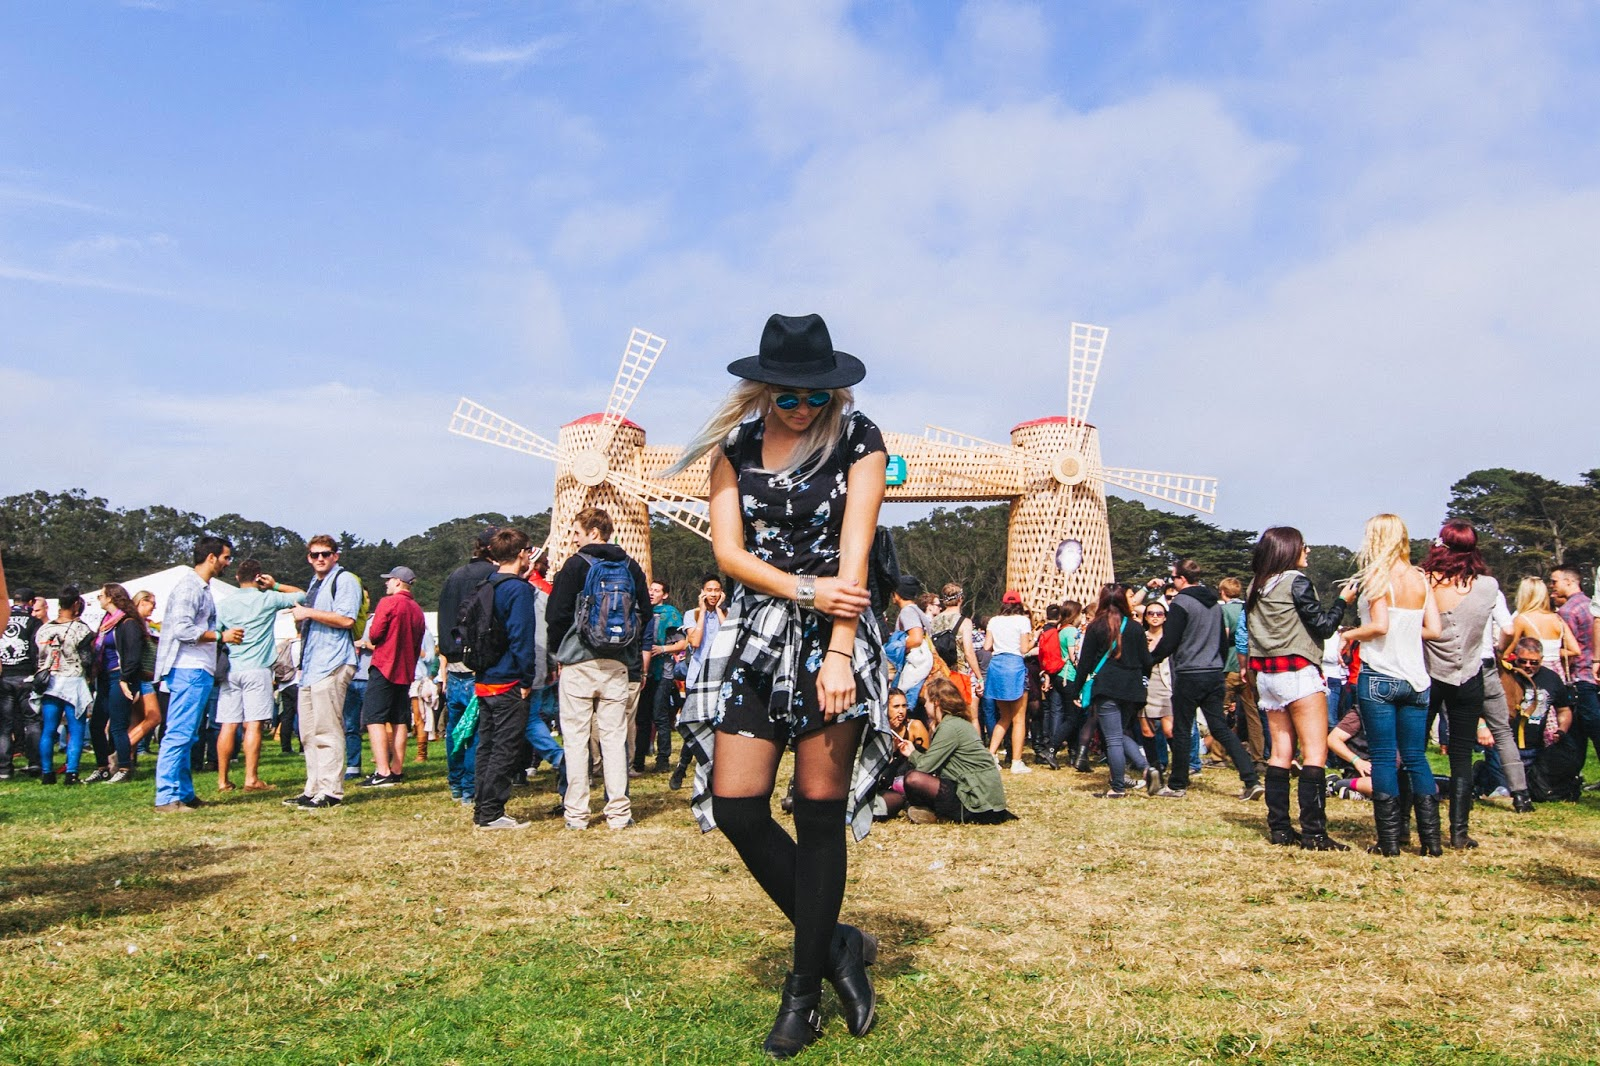 Festival Style at Outside Lands 2014